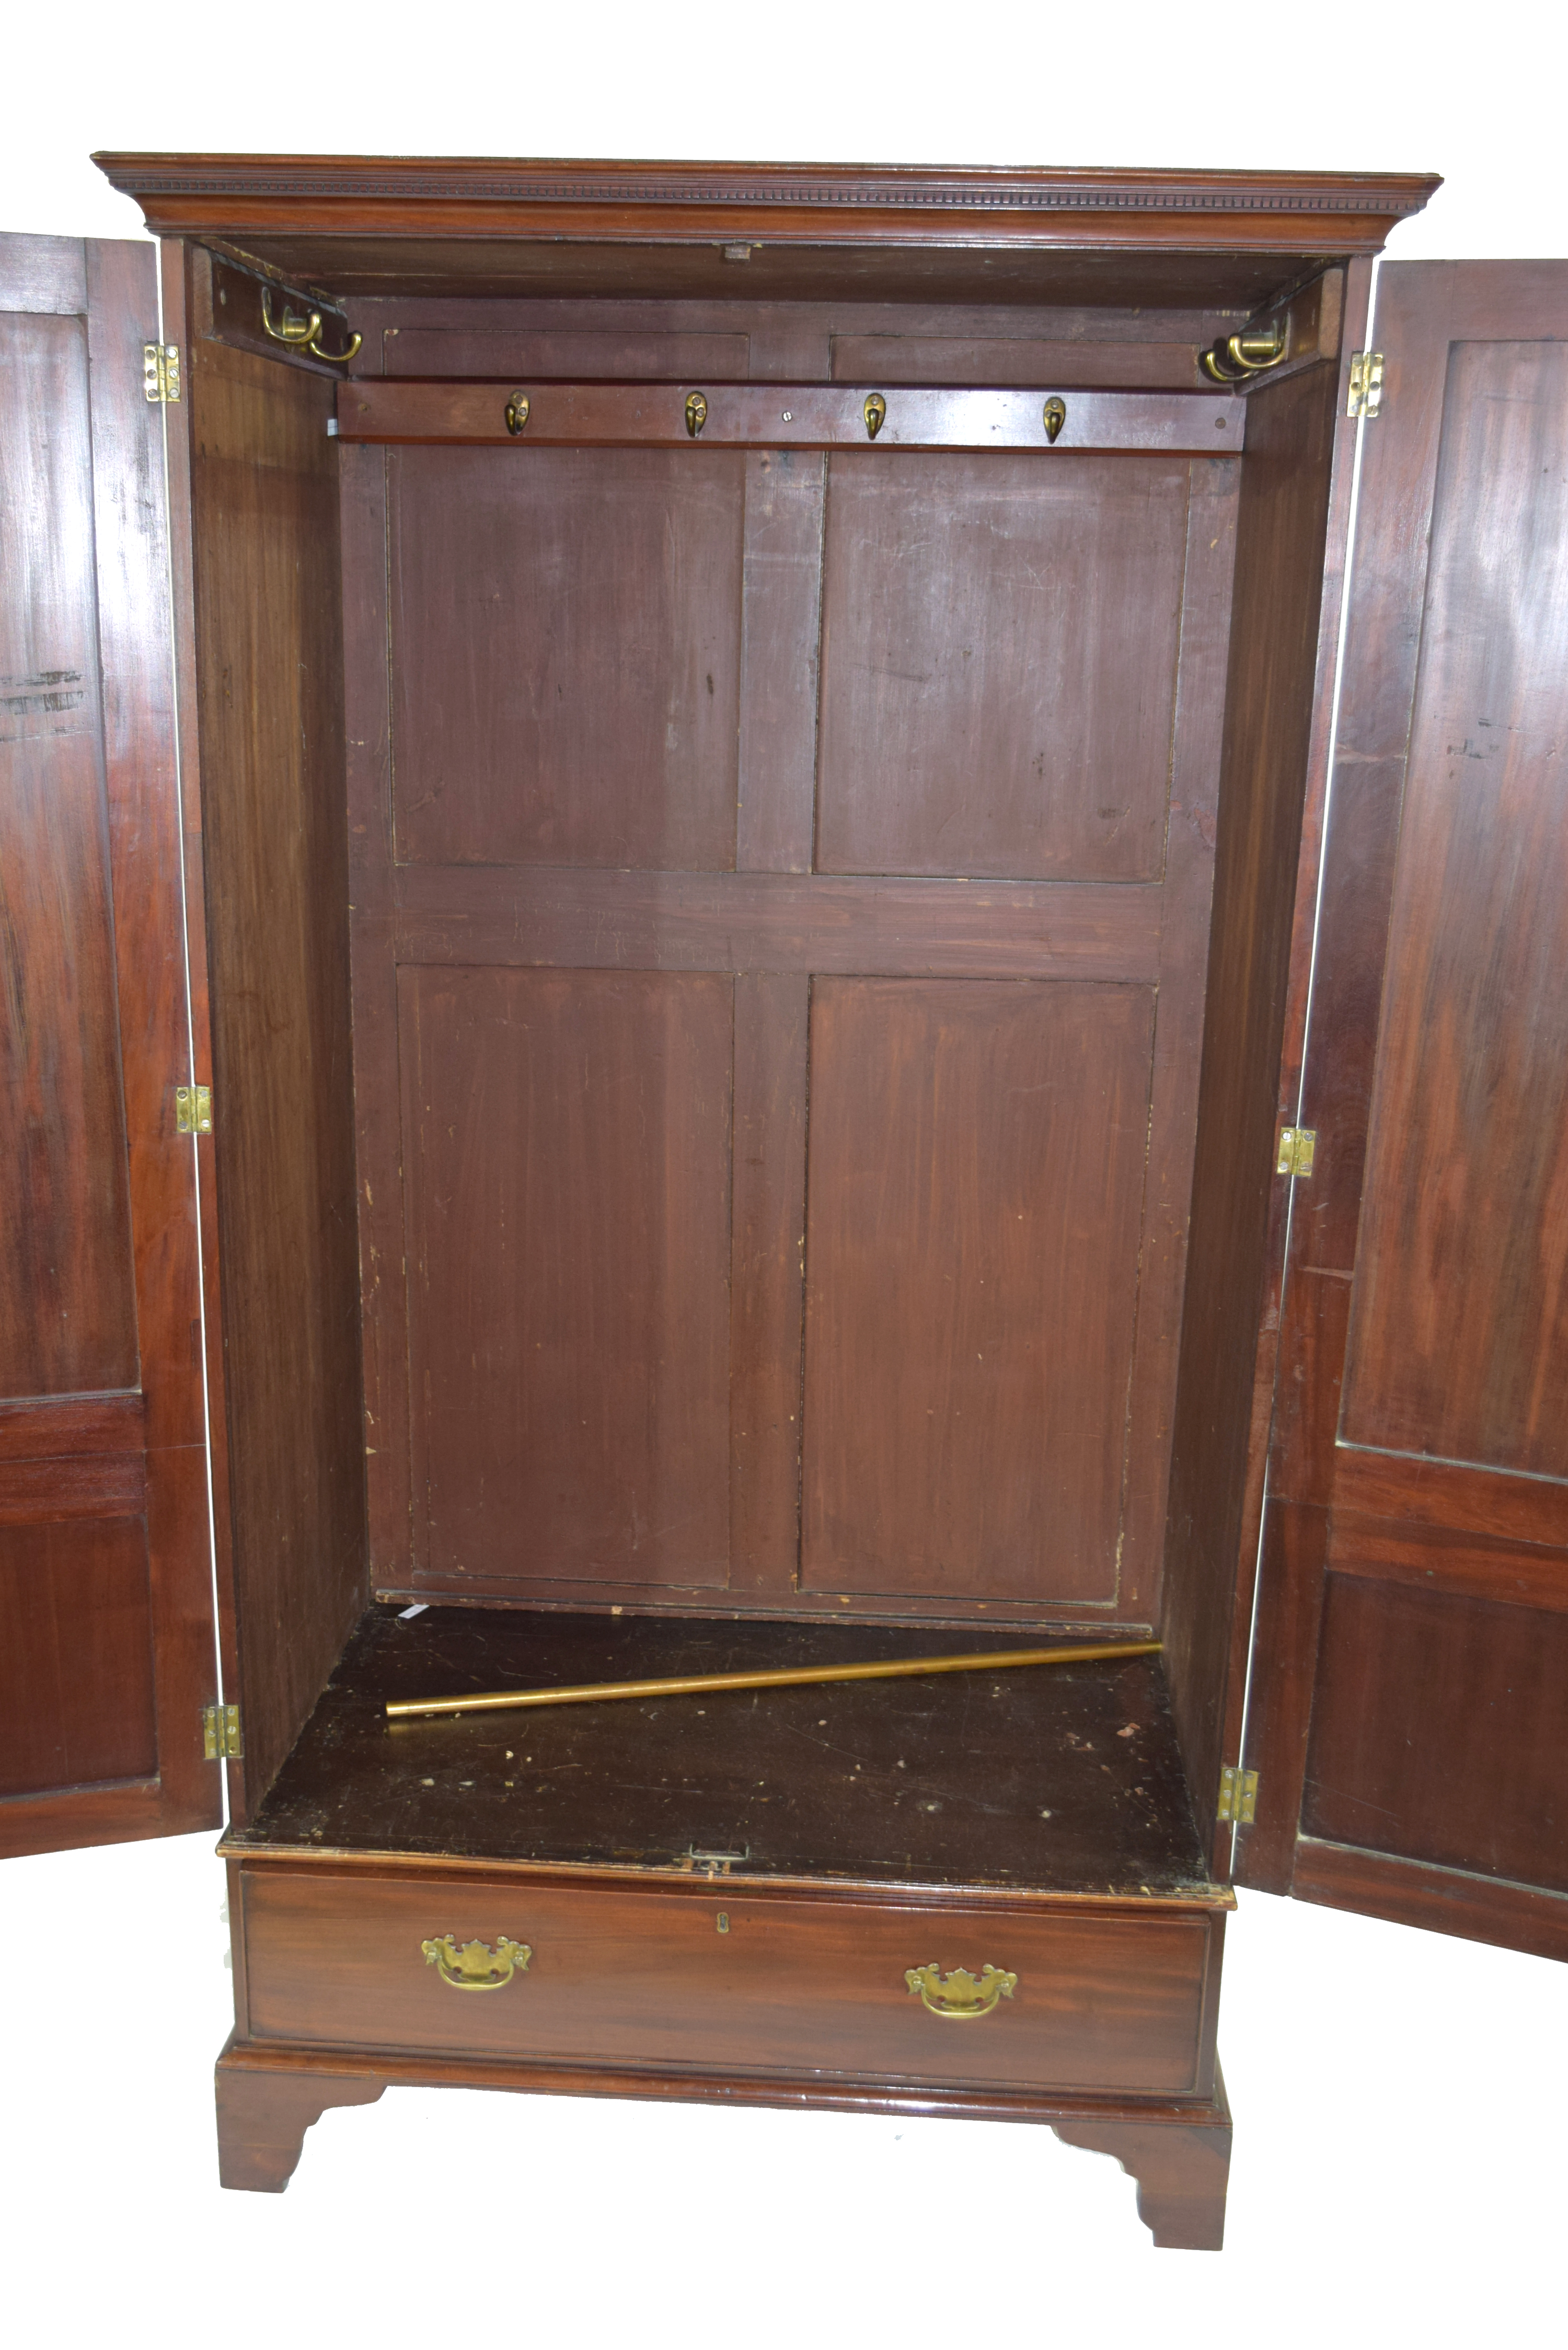 19th century mahogany wardrobe with moulded cornice over two panelled doors and single drawer - Image 4 of 6